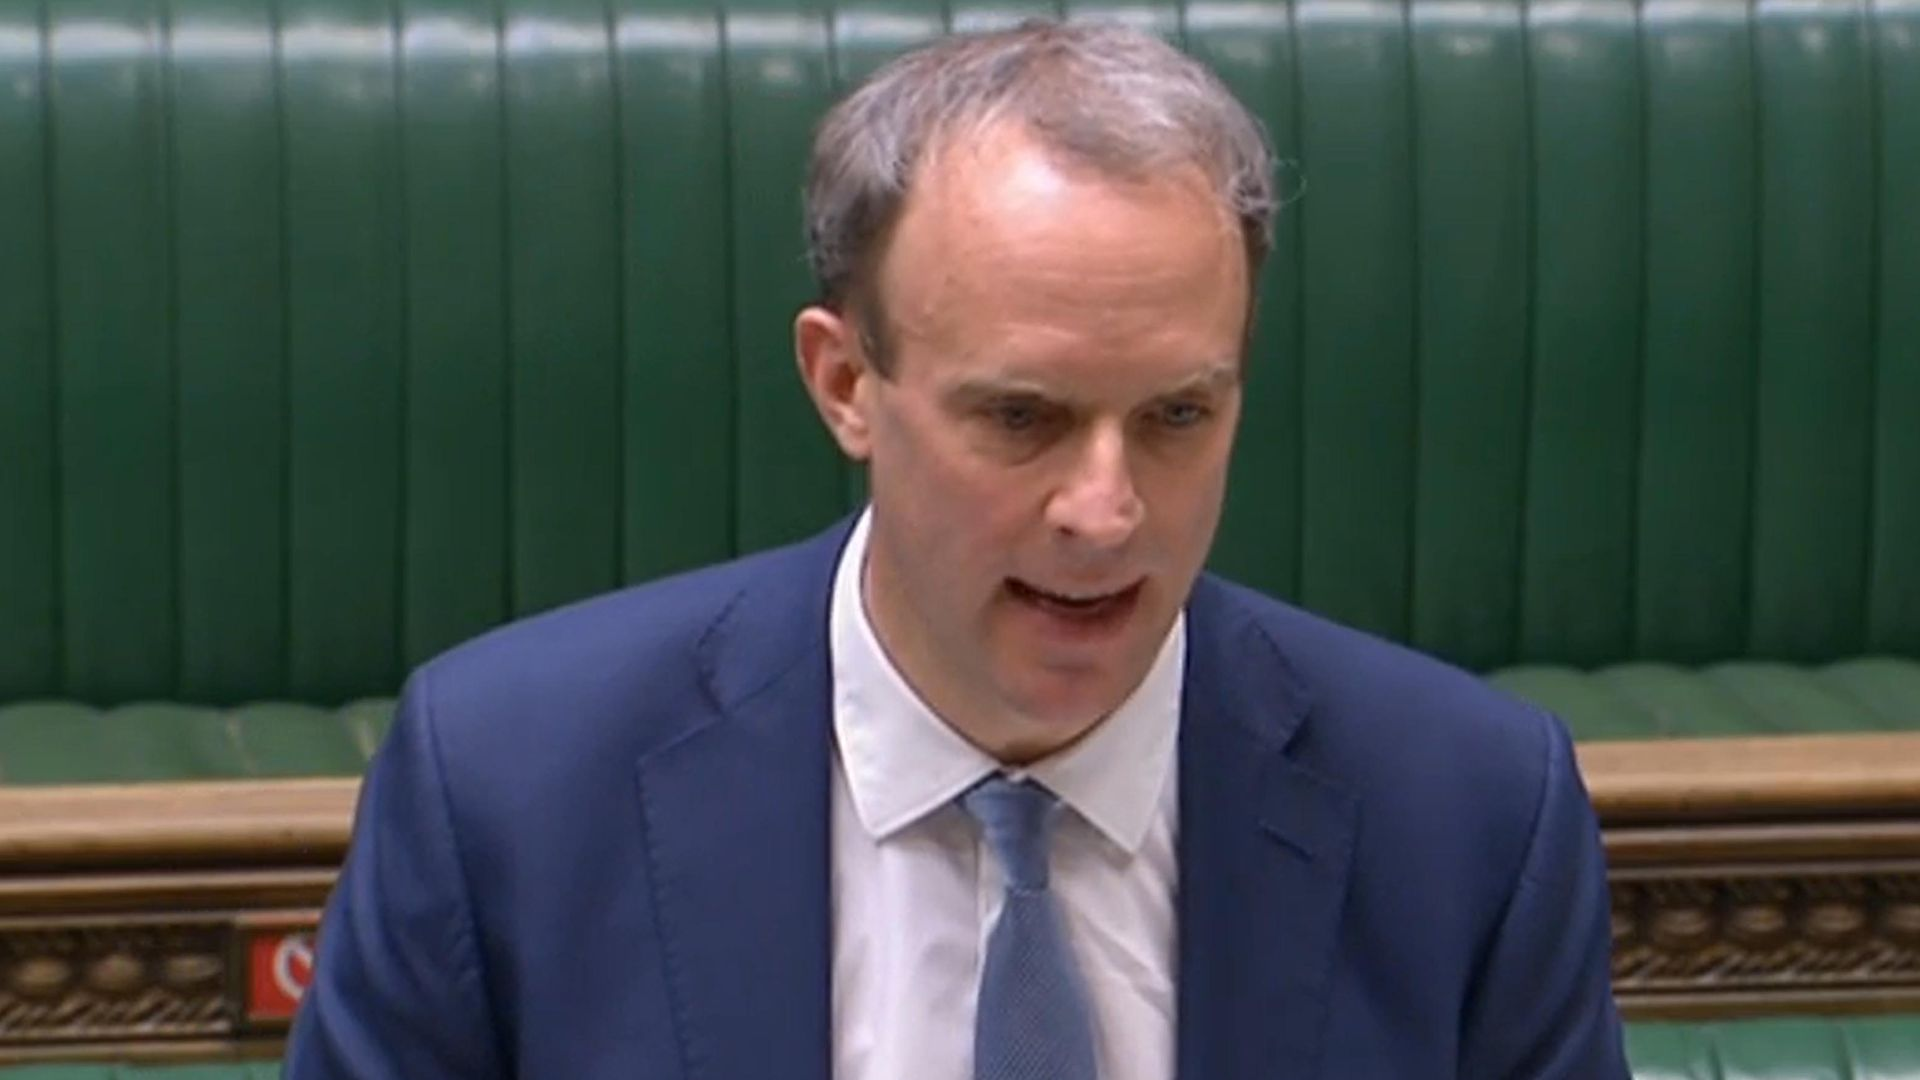 Foreign secretary Dominic Raab giving a statement in the House of Commons - Credit: PA